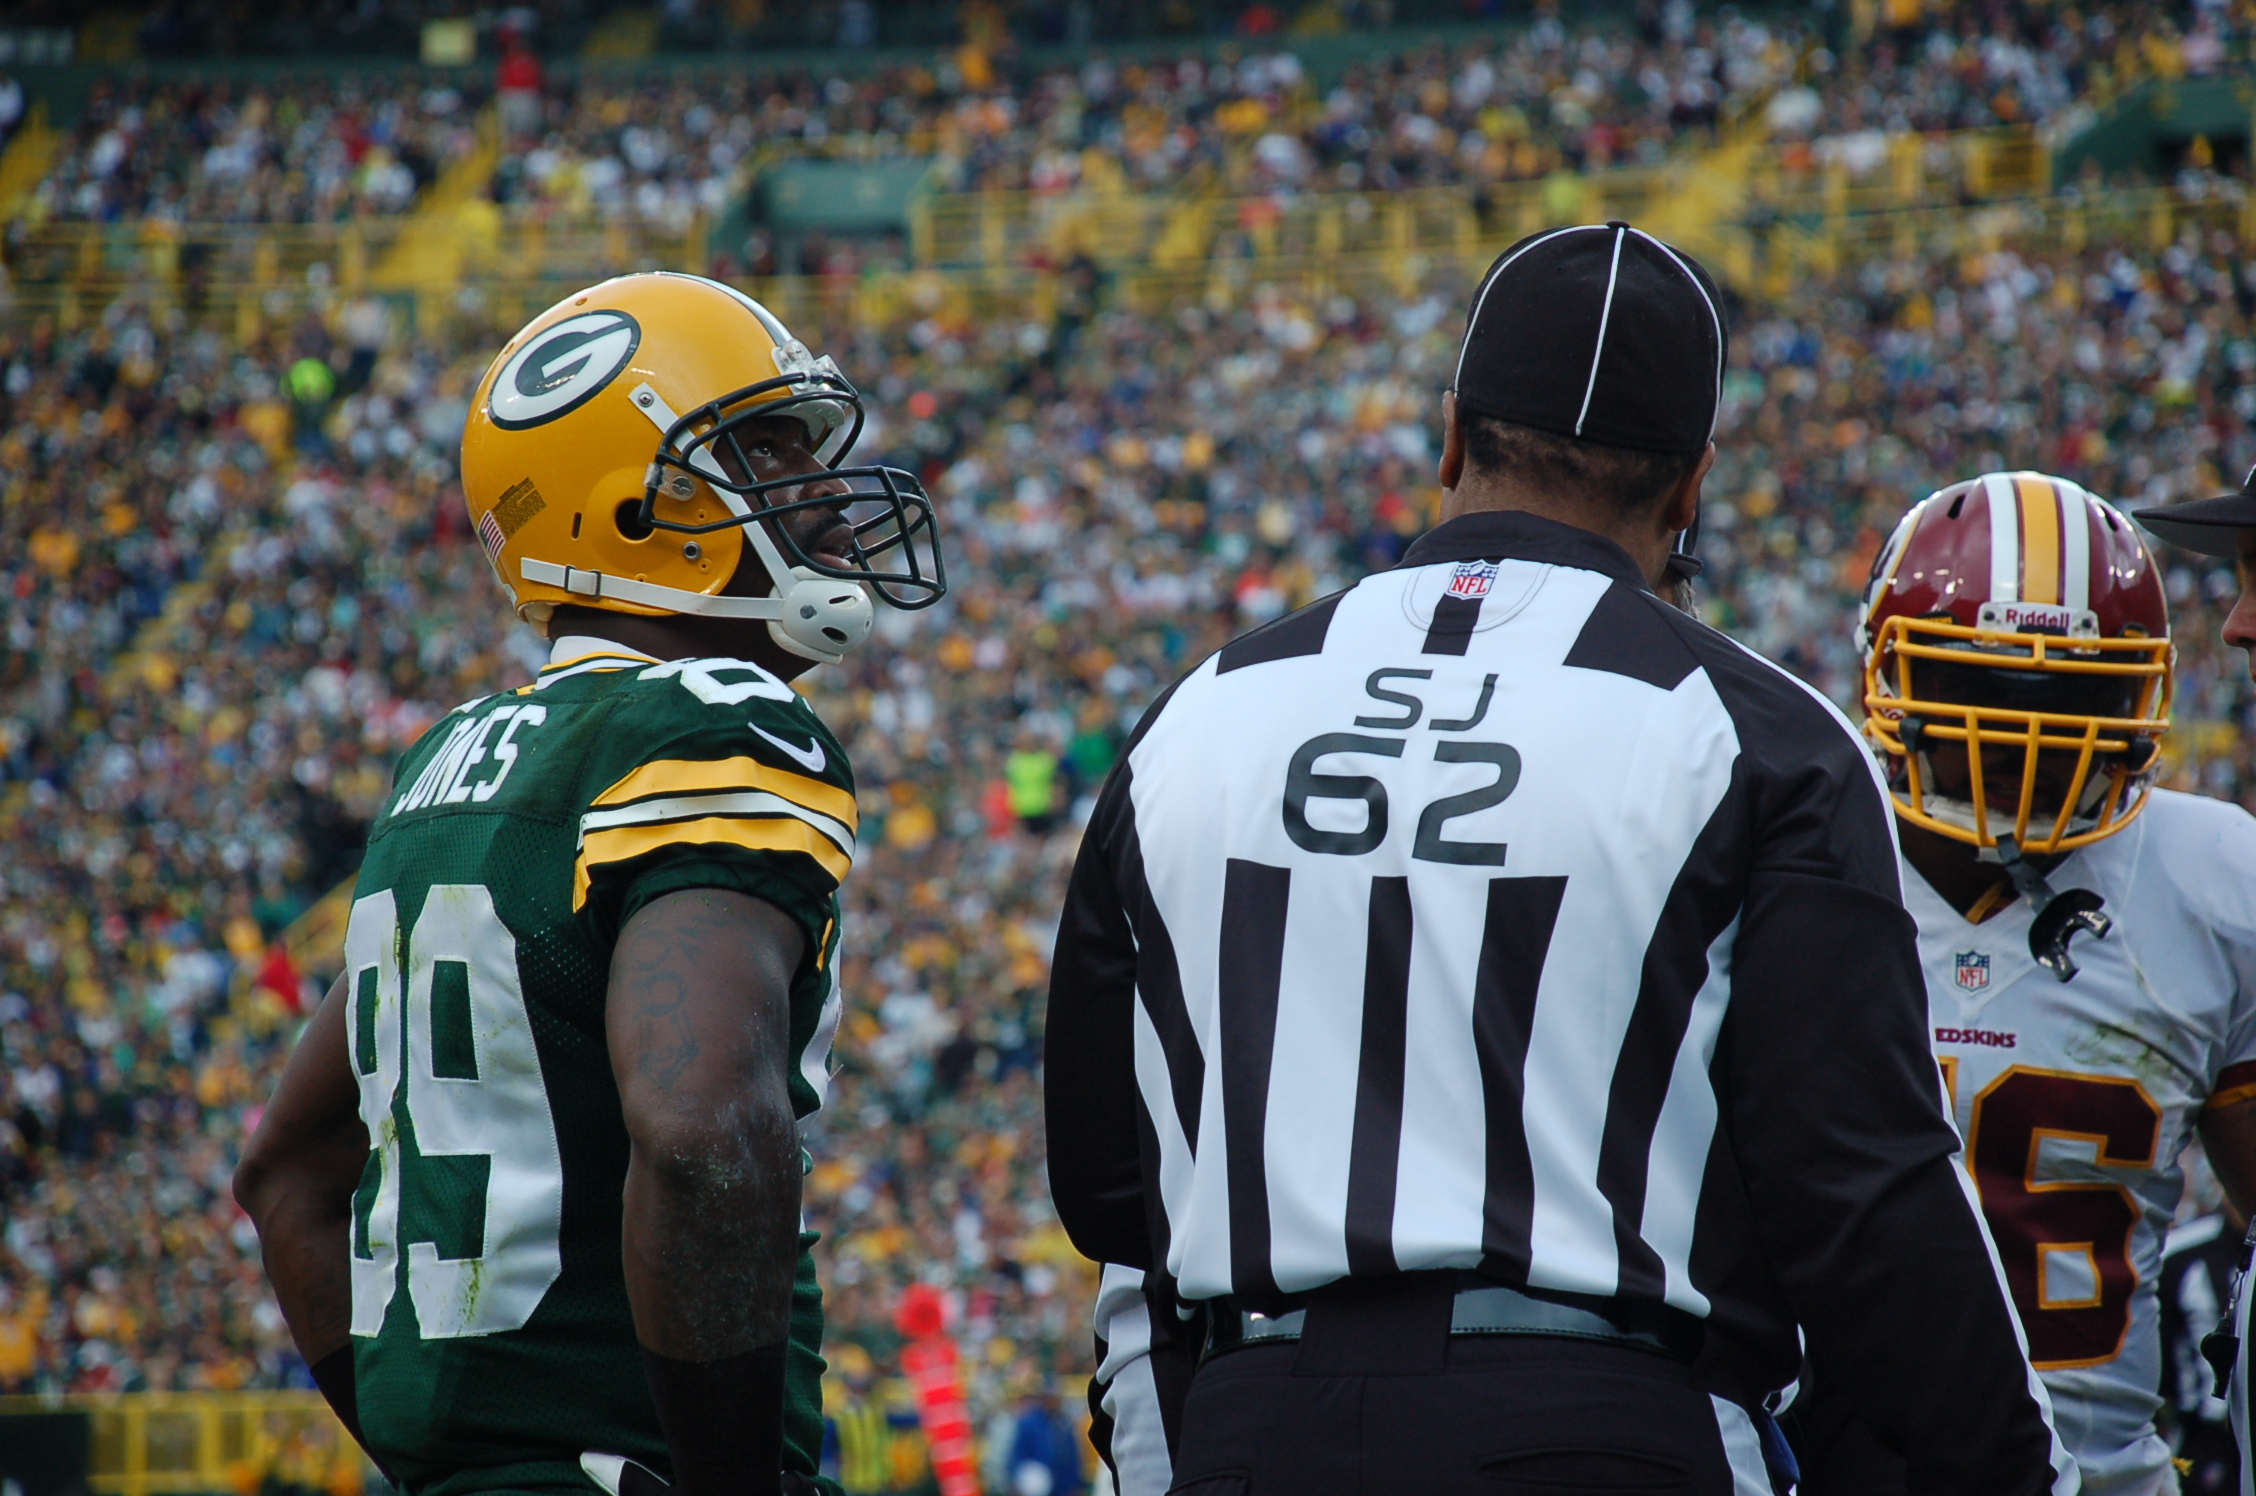 James Jones back on the field would be a good thing for the Green Bay Packers. Brian Jopek photograph